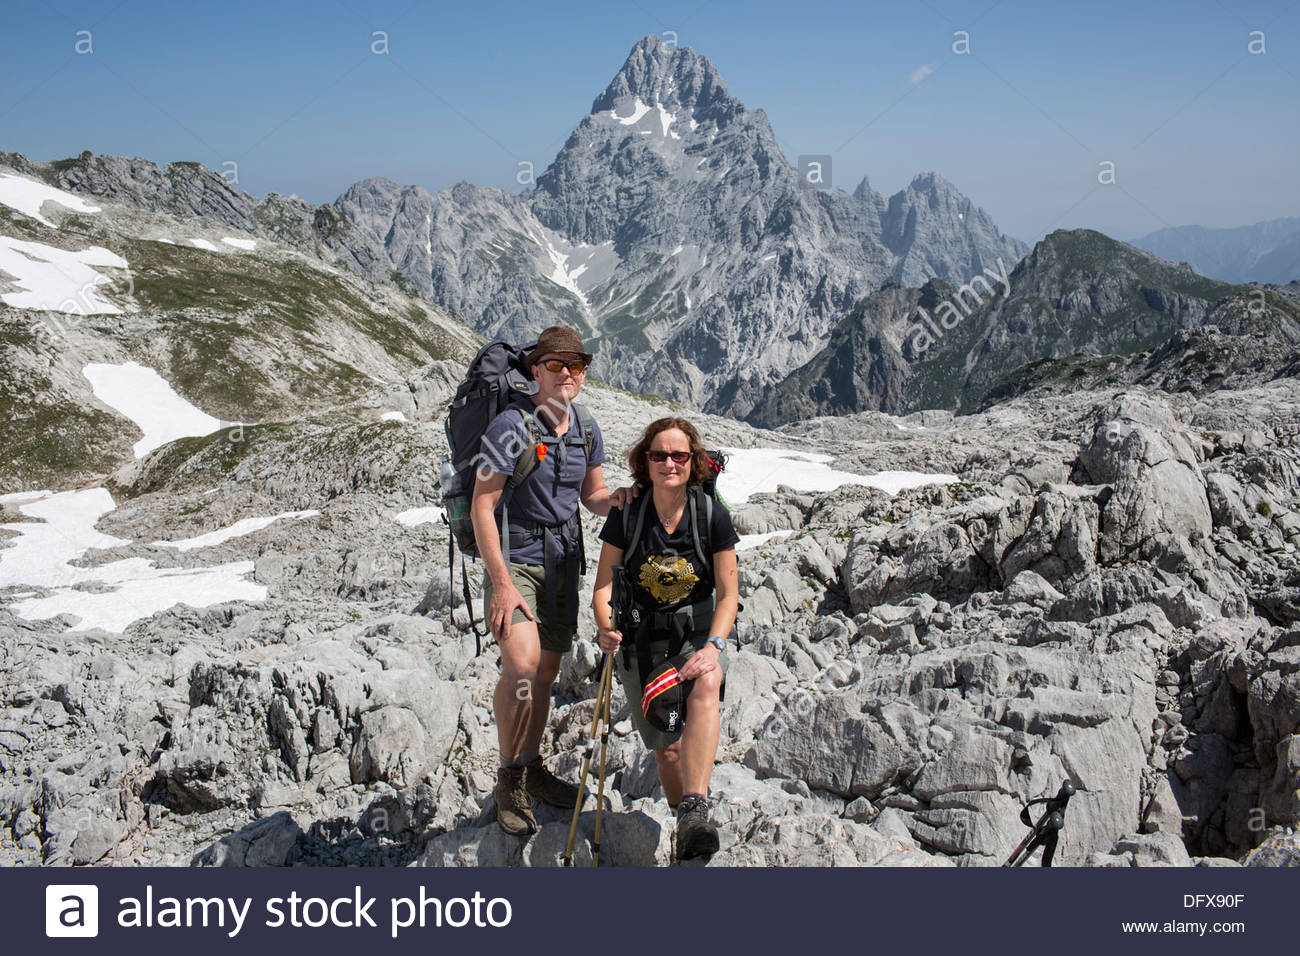 national park mature singles The national parks and federal recreational lands pass series is your ticket to more than 2,000 federal recreation sites, covering entrance, standard amenity, and.